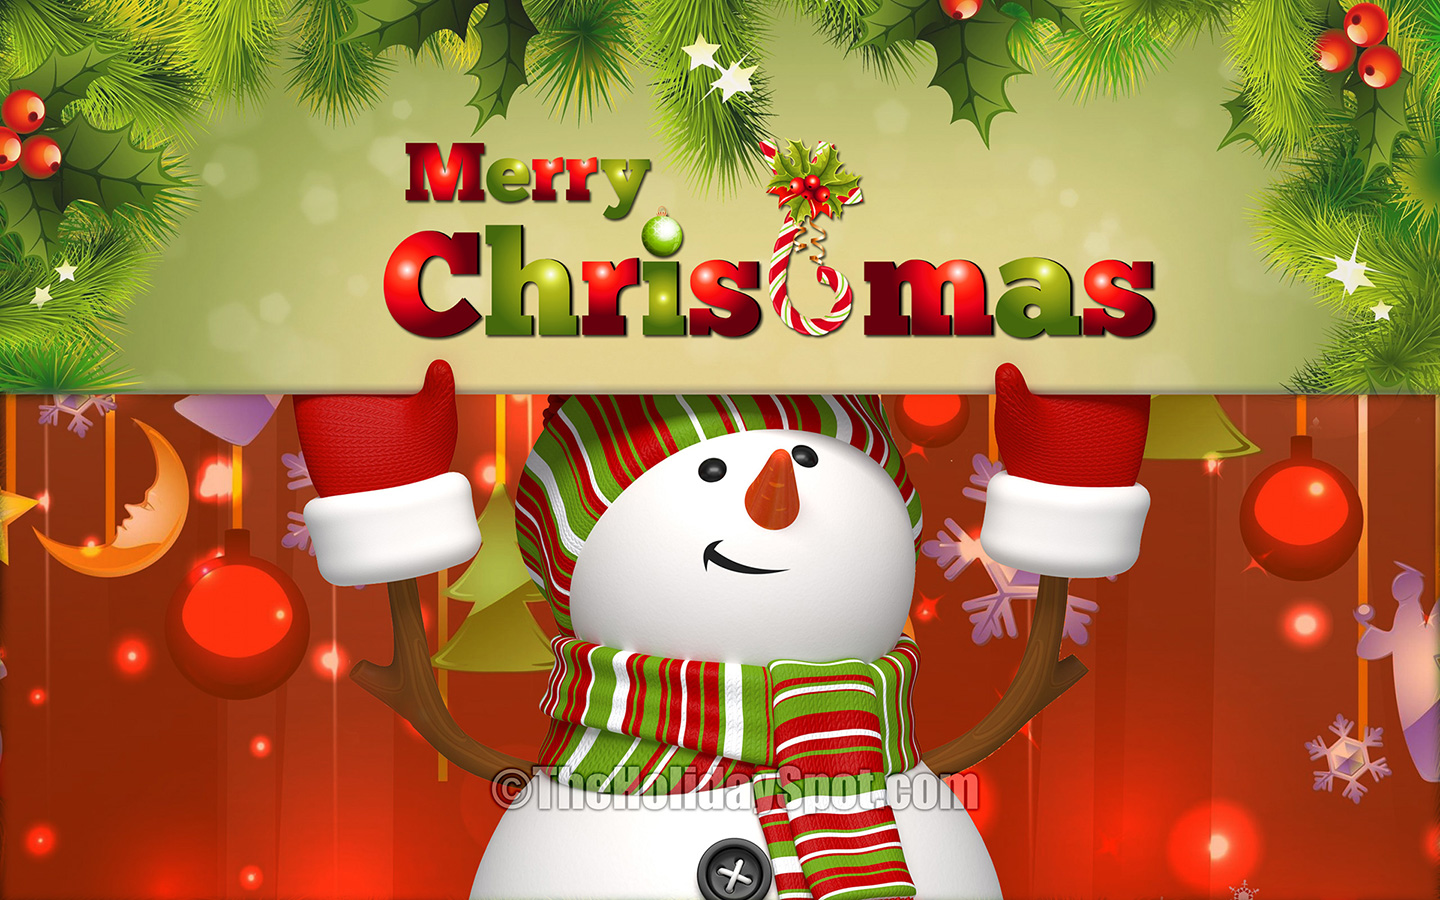 Free Christmas Wallpaper Downloads